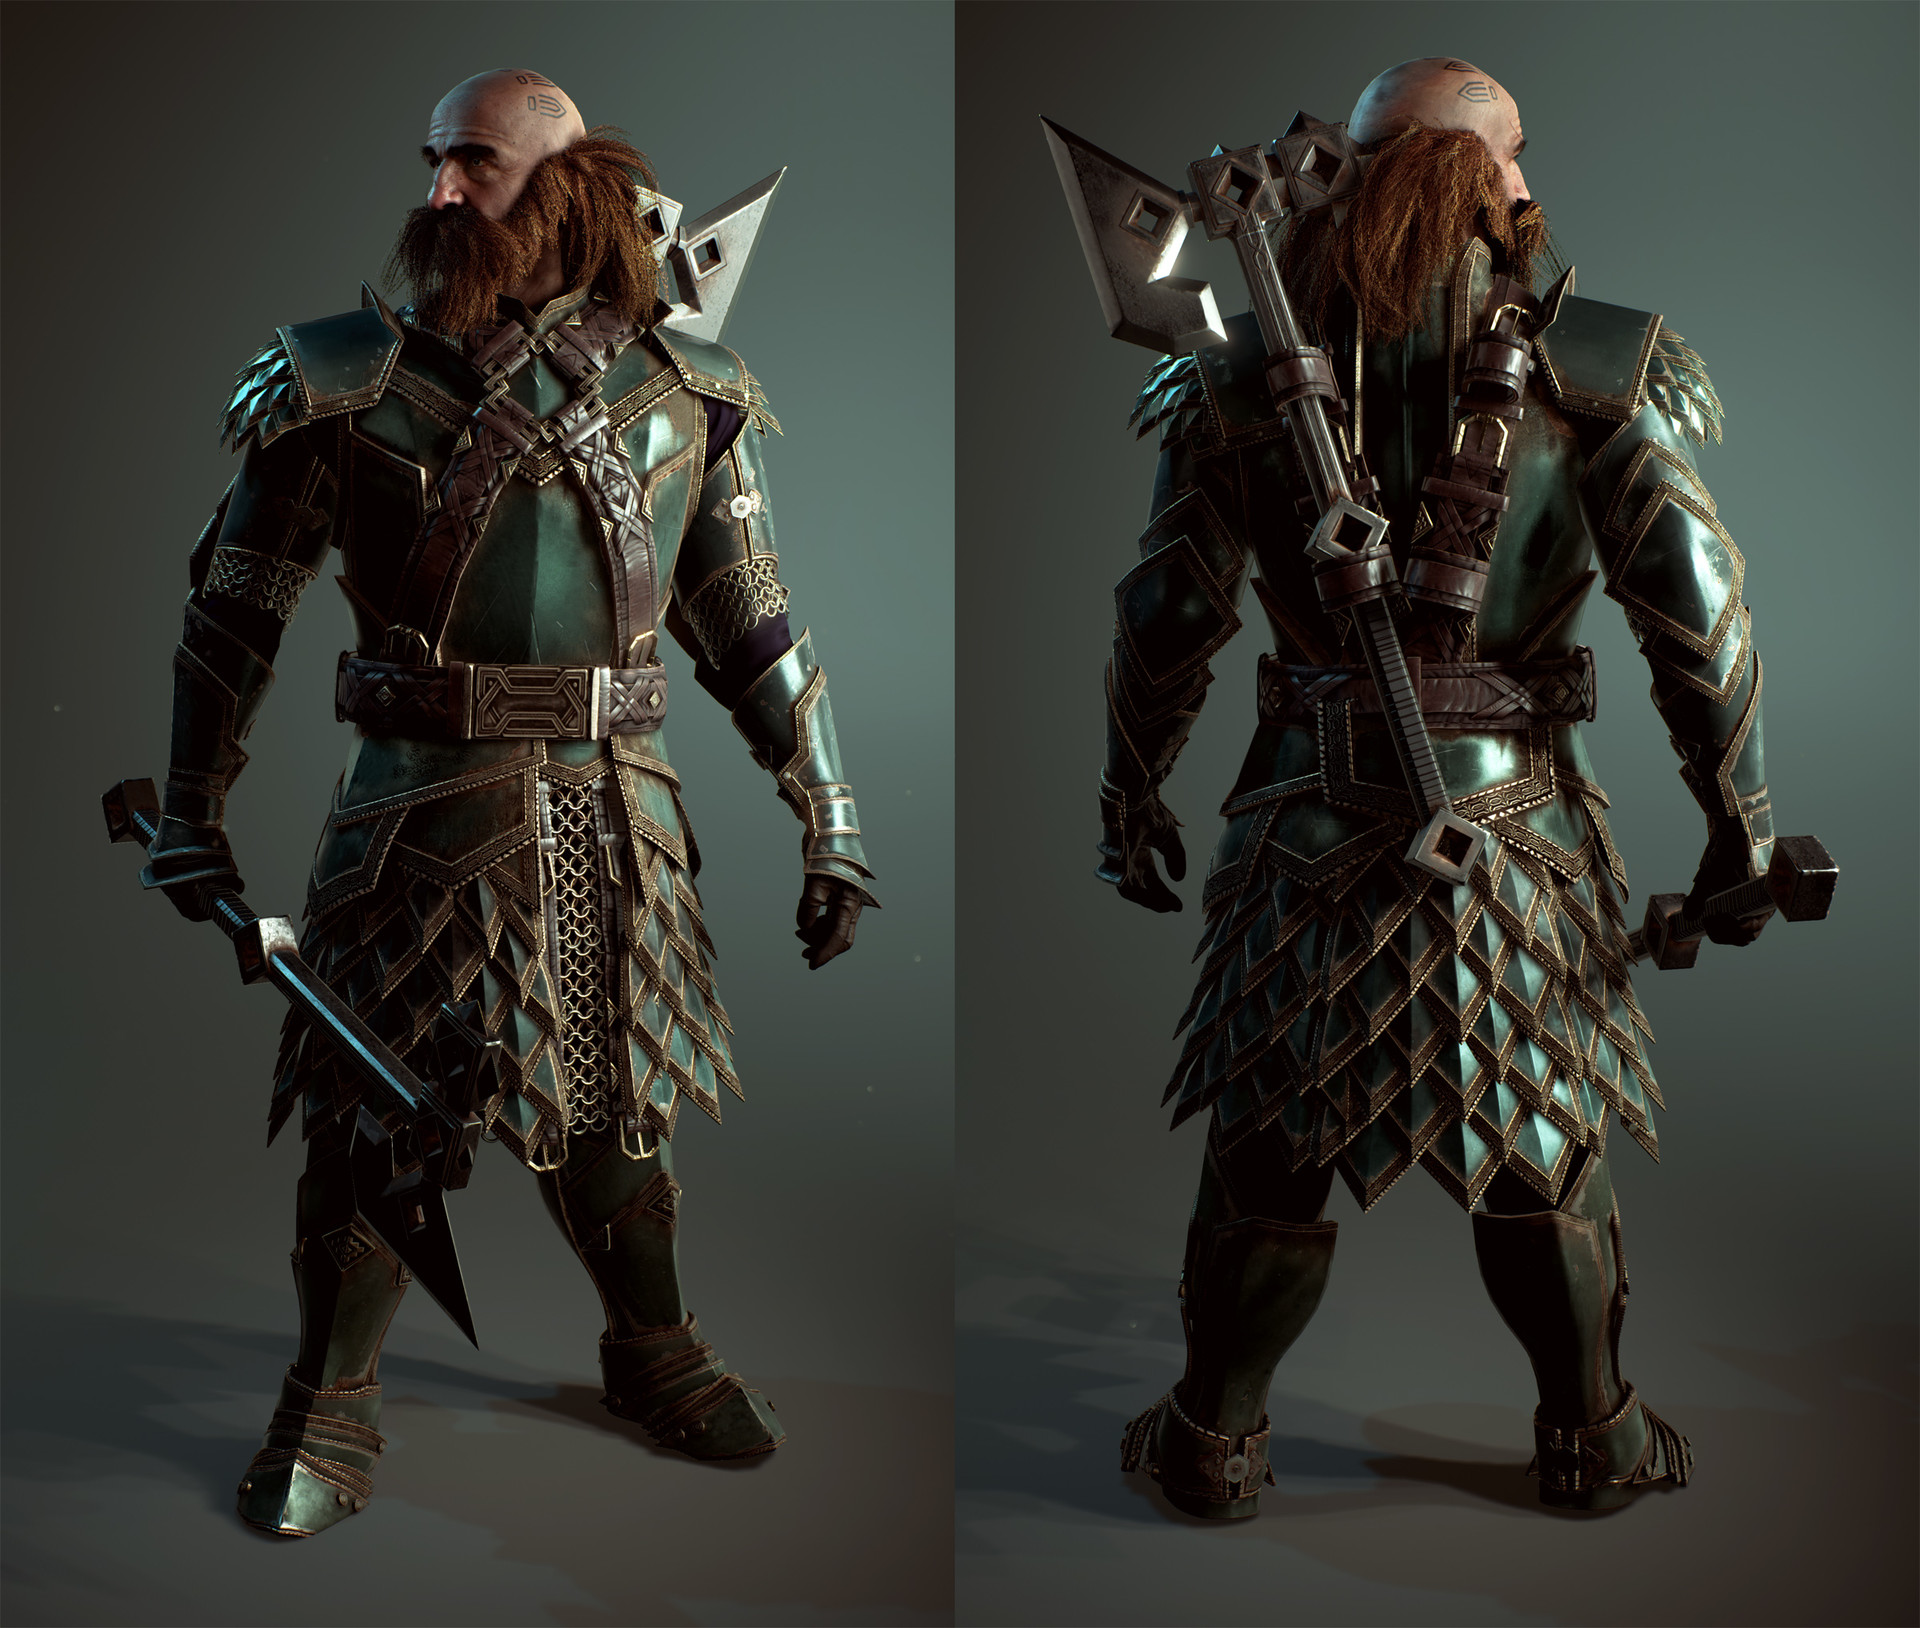 Dwarf Dwalin Realtime Model created in Unreal engine 4